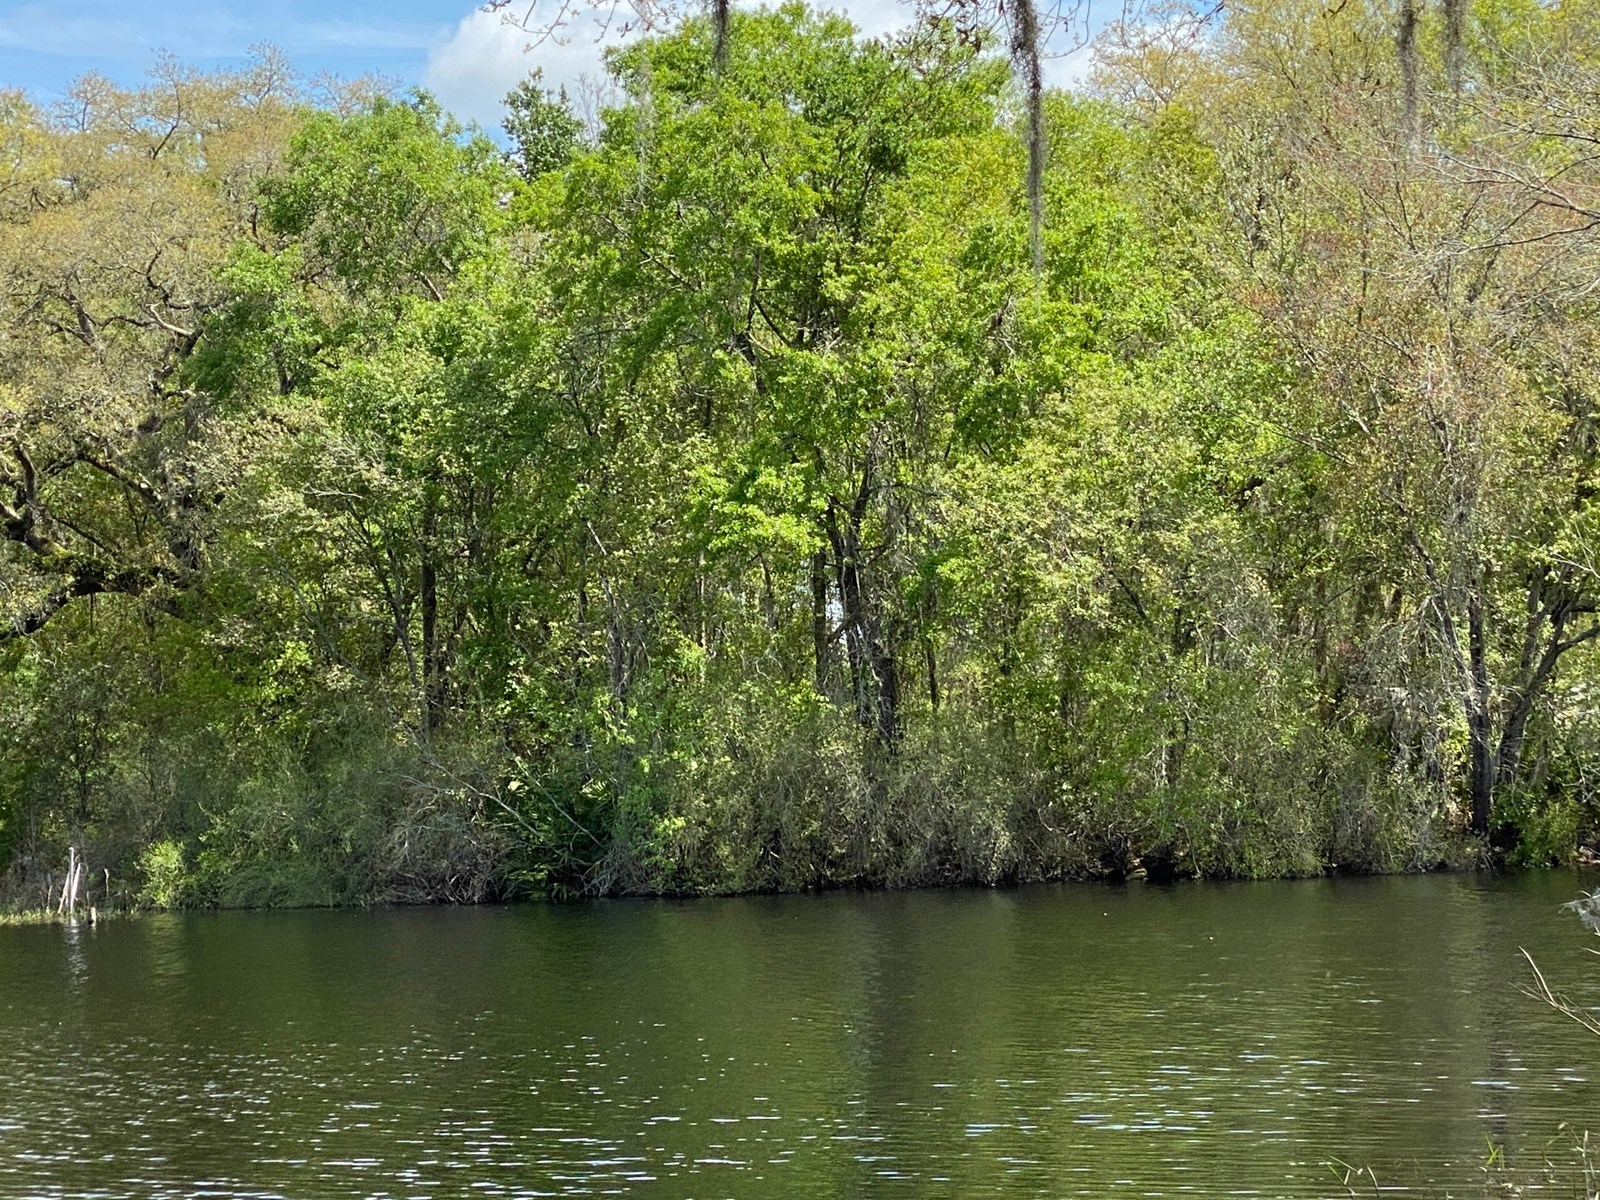 BEAUTIFUL PICKETT LAKE LOT IN MAYO, FL FOR $55,000.